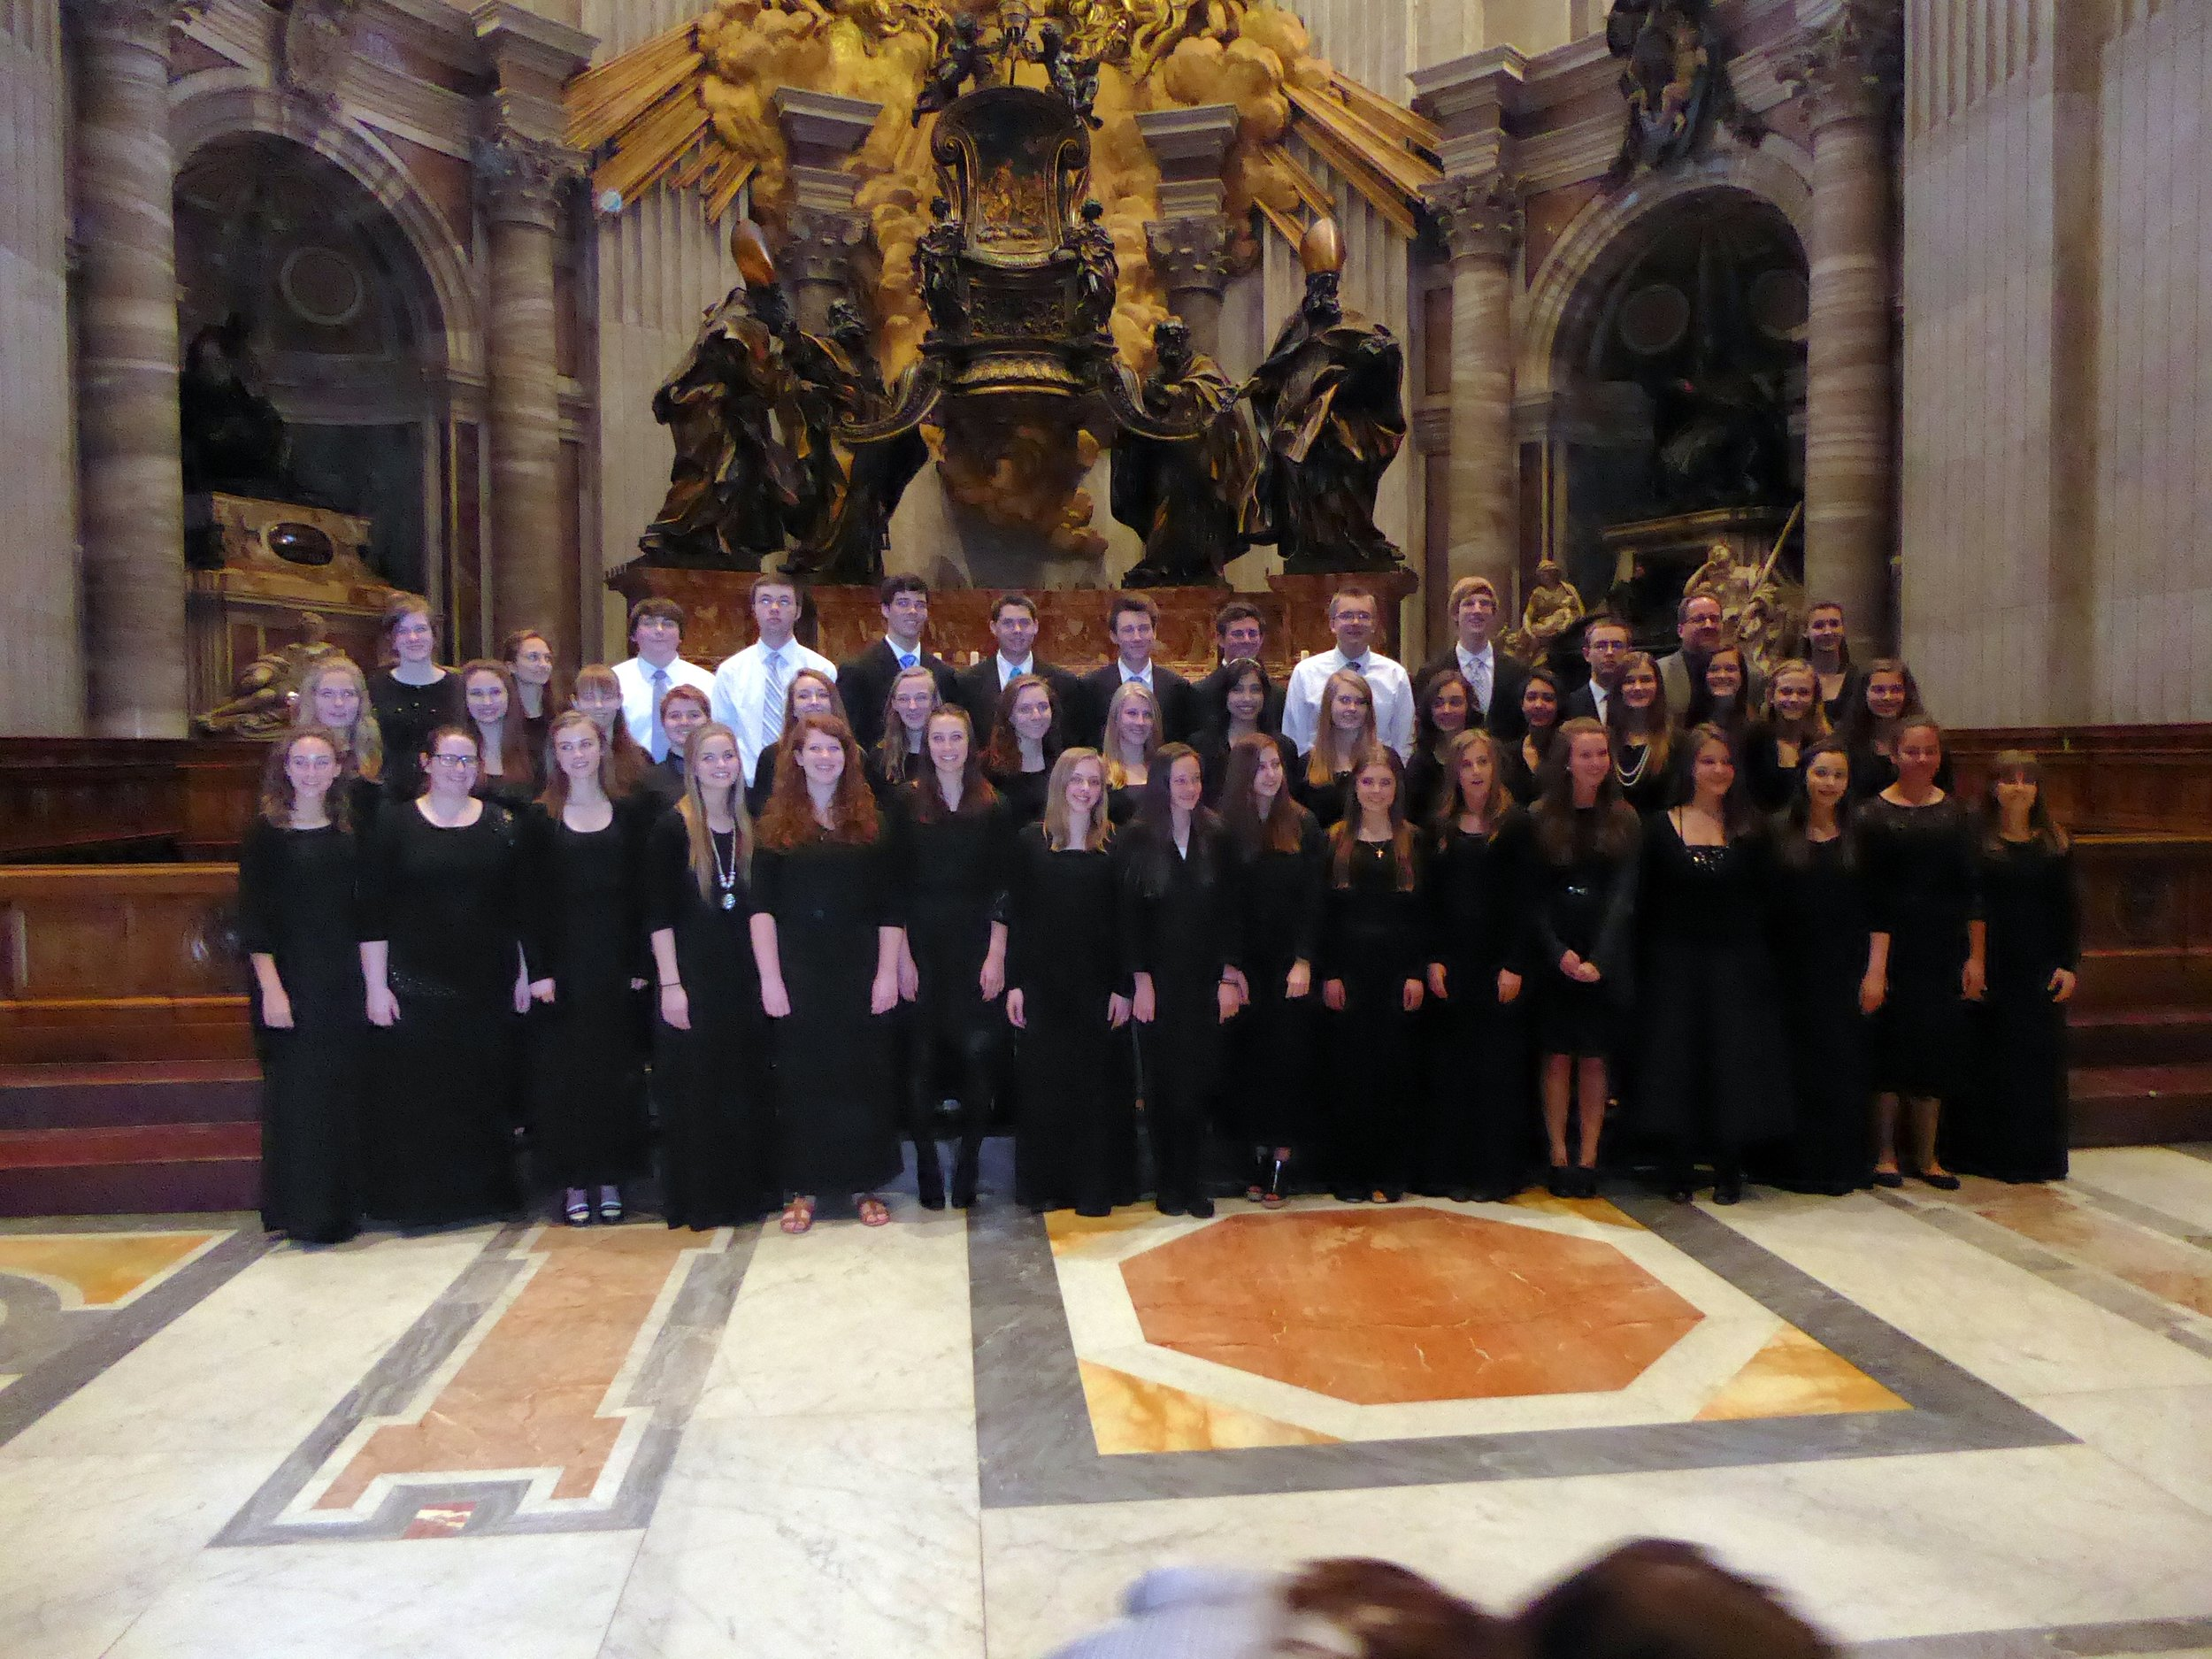 Travel - In 2015 the Ralston Valley Music Department traveled to and performed in Venice, Florence and Rome Italy. 45 Ralston Valley Choir students had the honor of being selected to sing at High Mass in St. Peter's Basilica in the Vatican the Saturday before Palm Sunday. The Choirs have also traveled to New York, Disney World, and other locations.